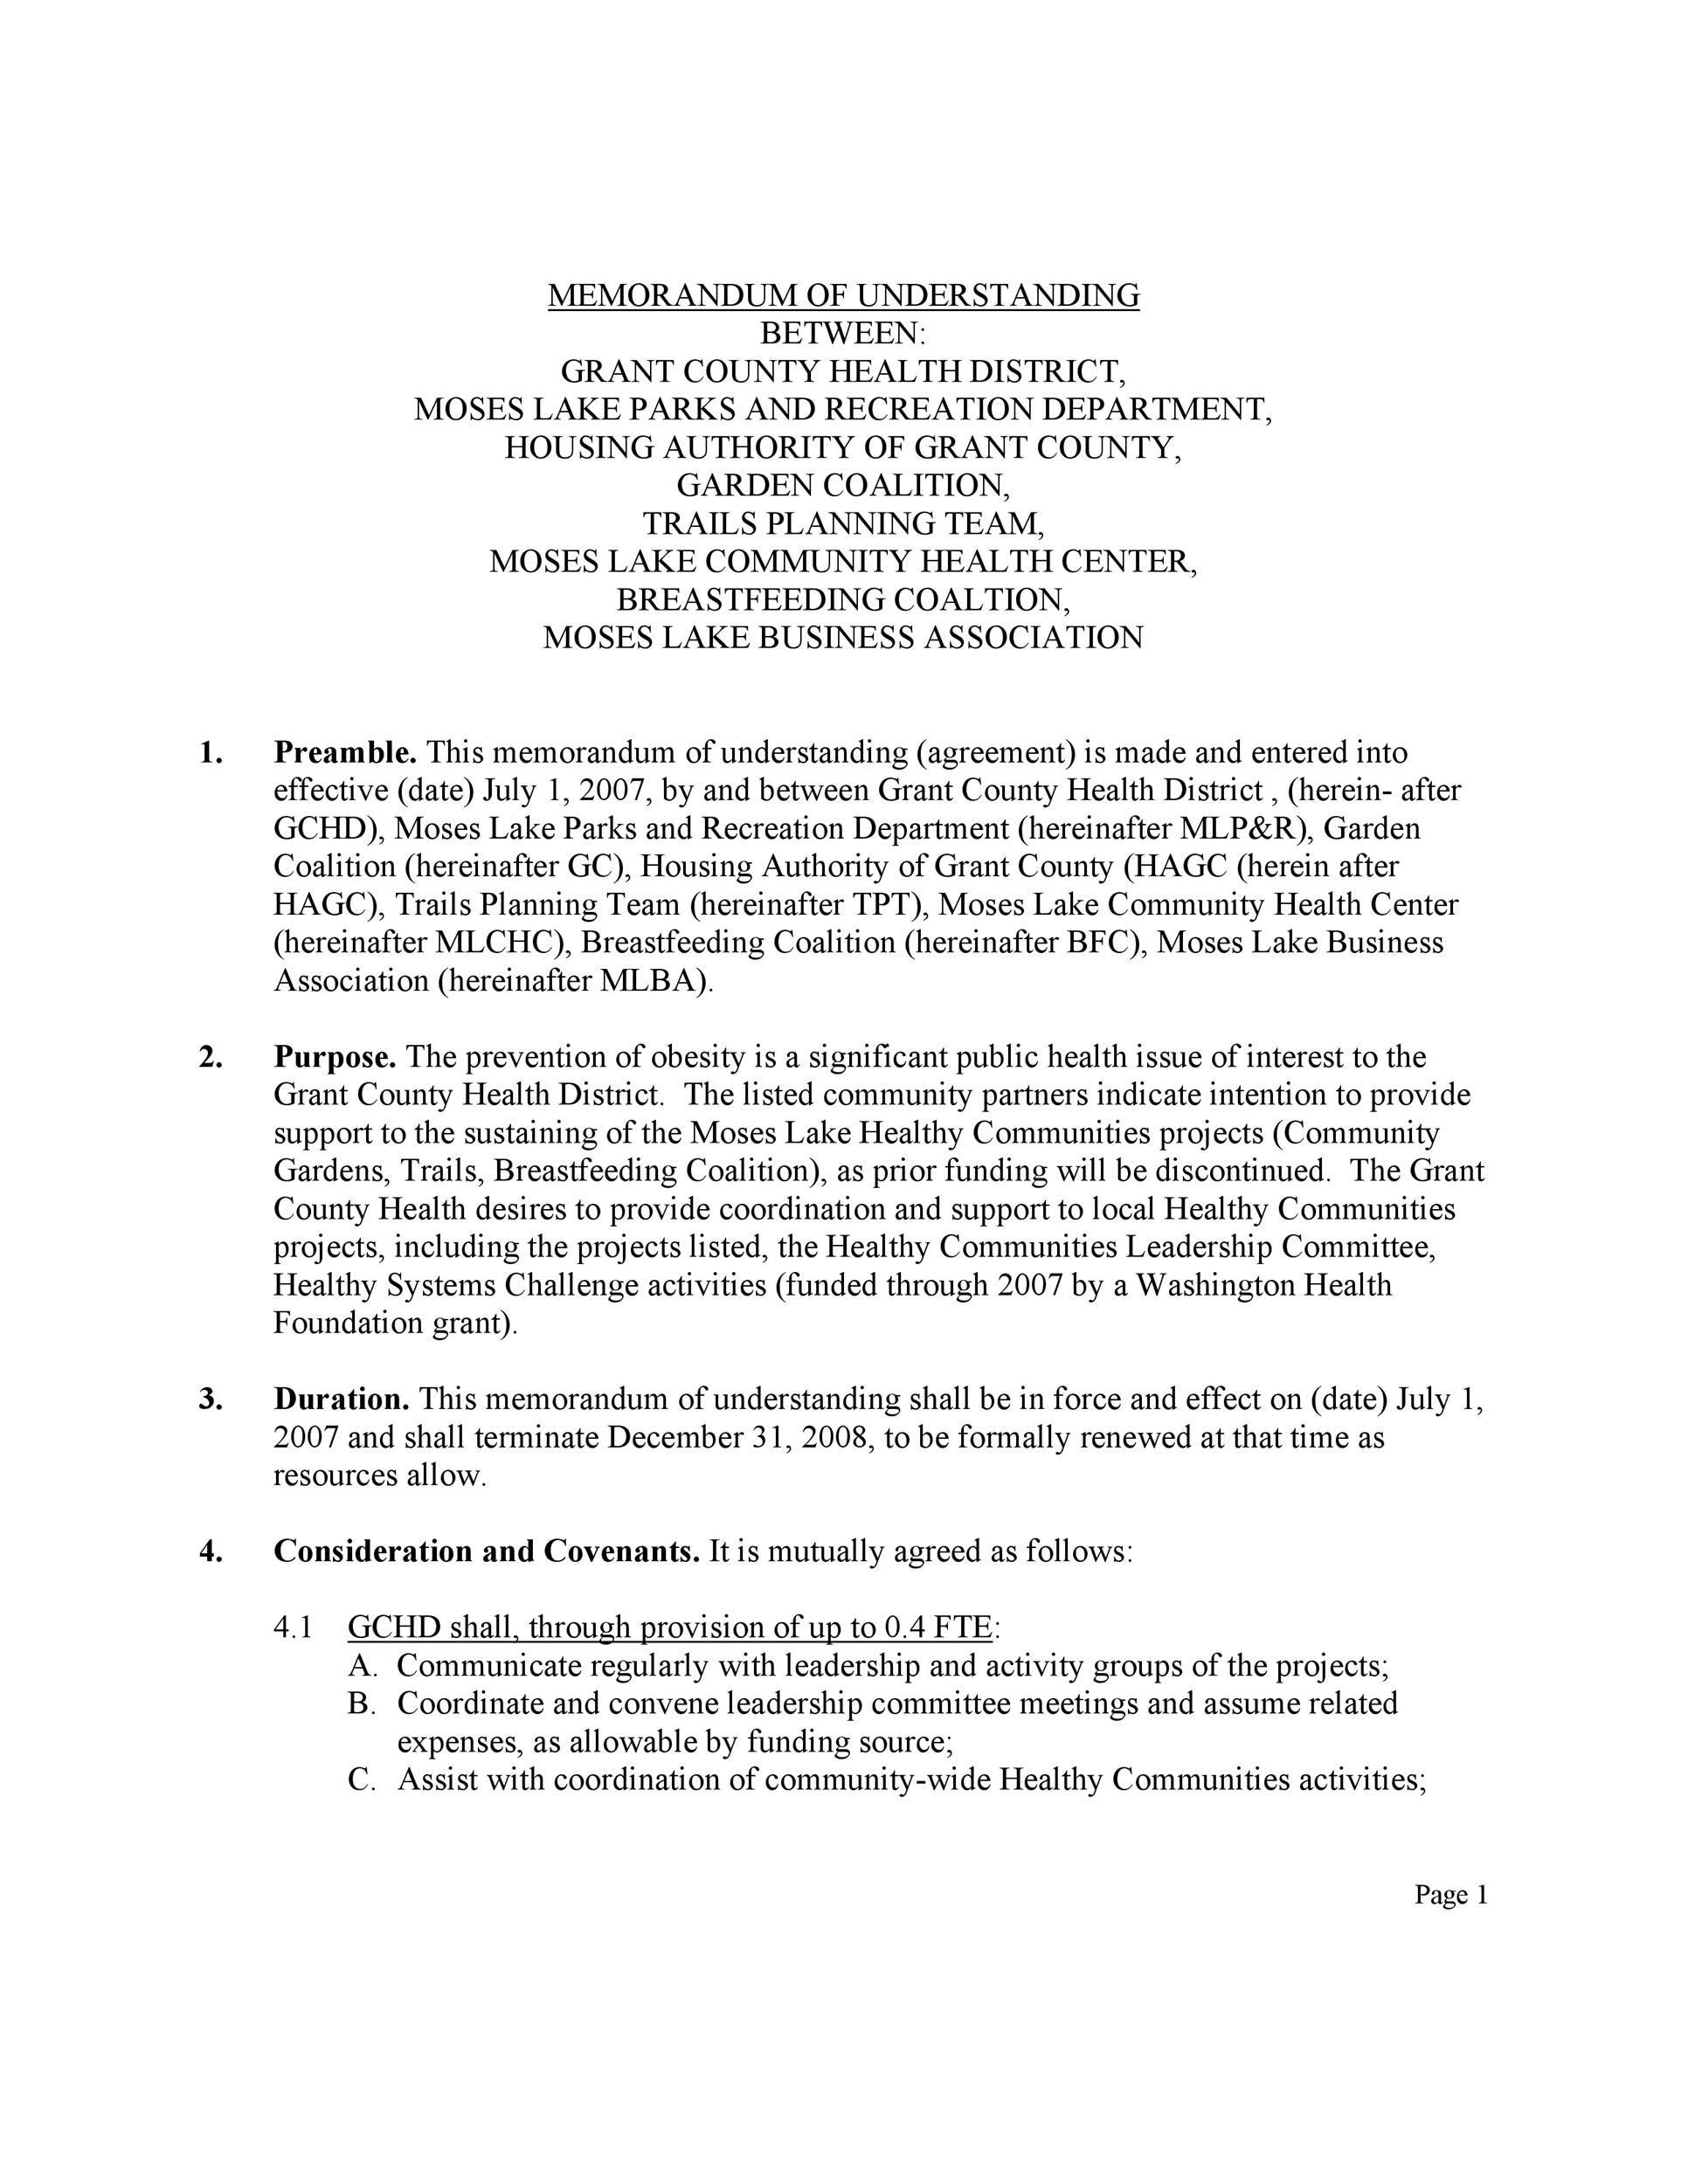 Sample Letter Of Intent For Grant Funding Pdf from templatelab.com